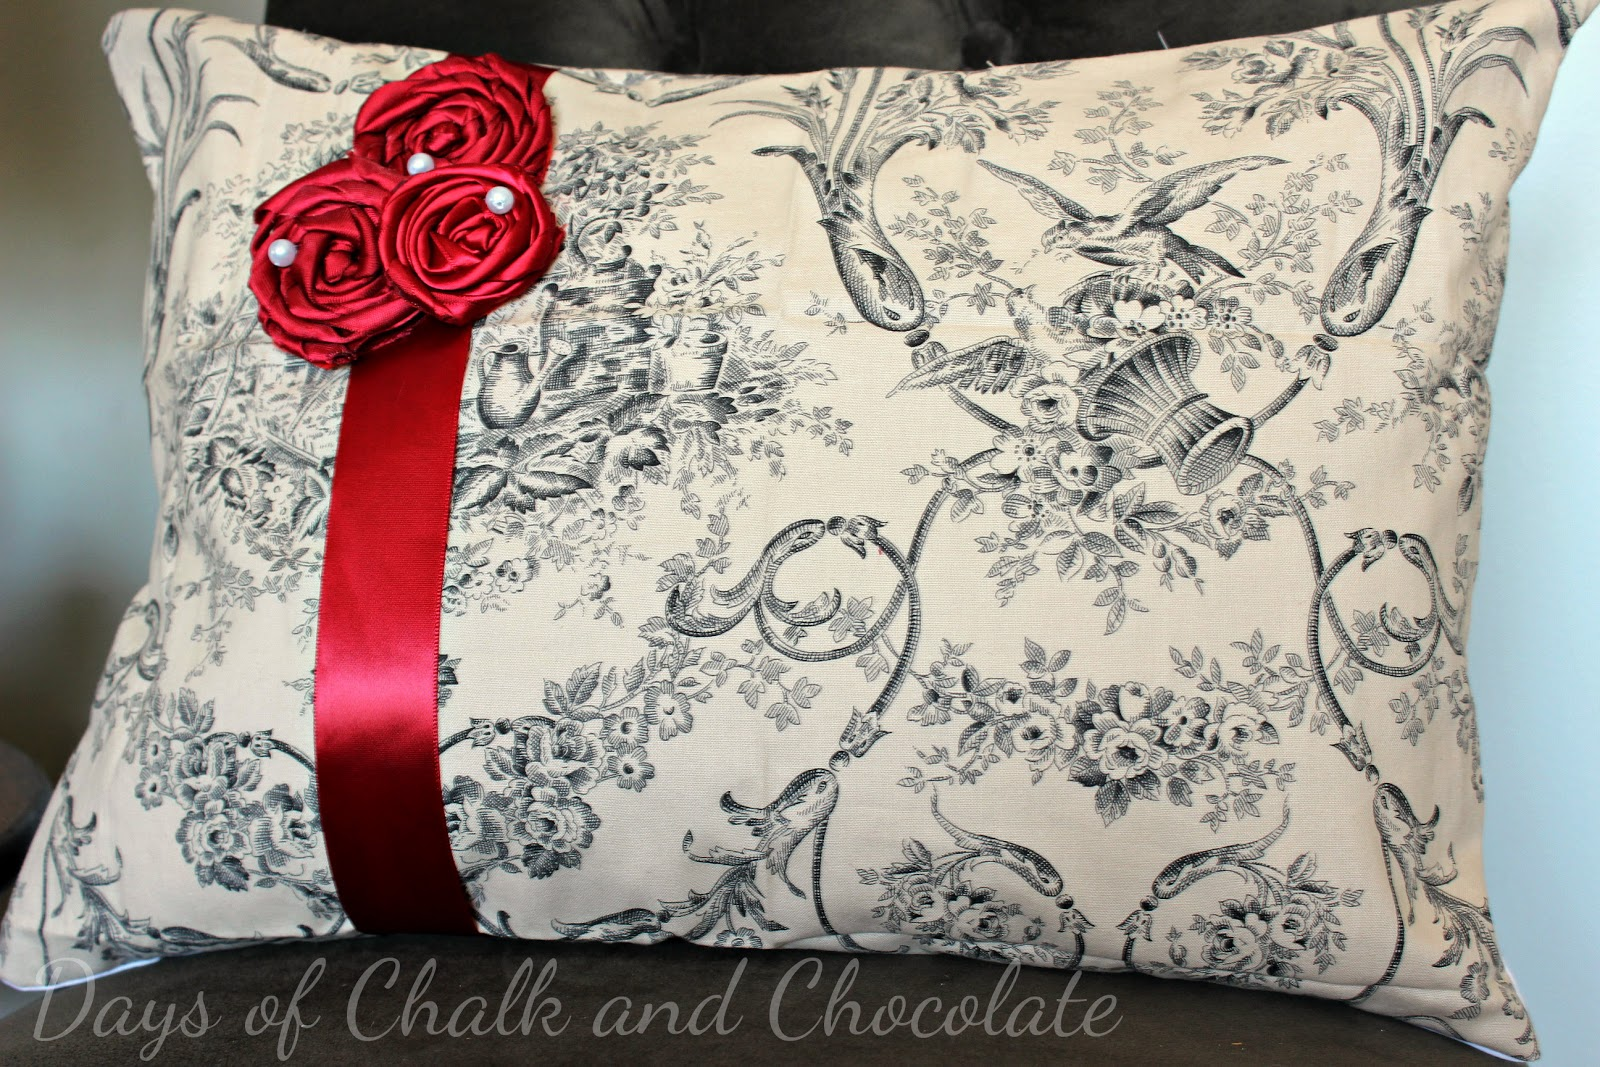 Days of Chalk and Chocolate: Toile Valentine's Day Pillow